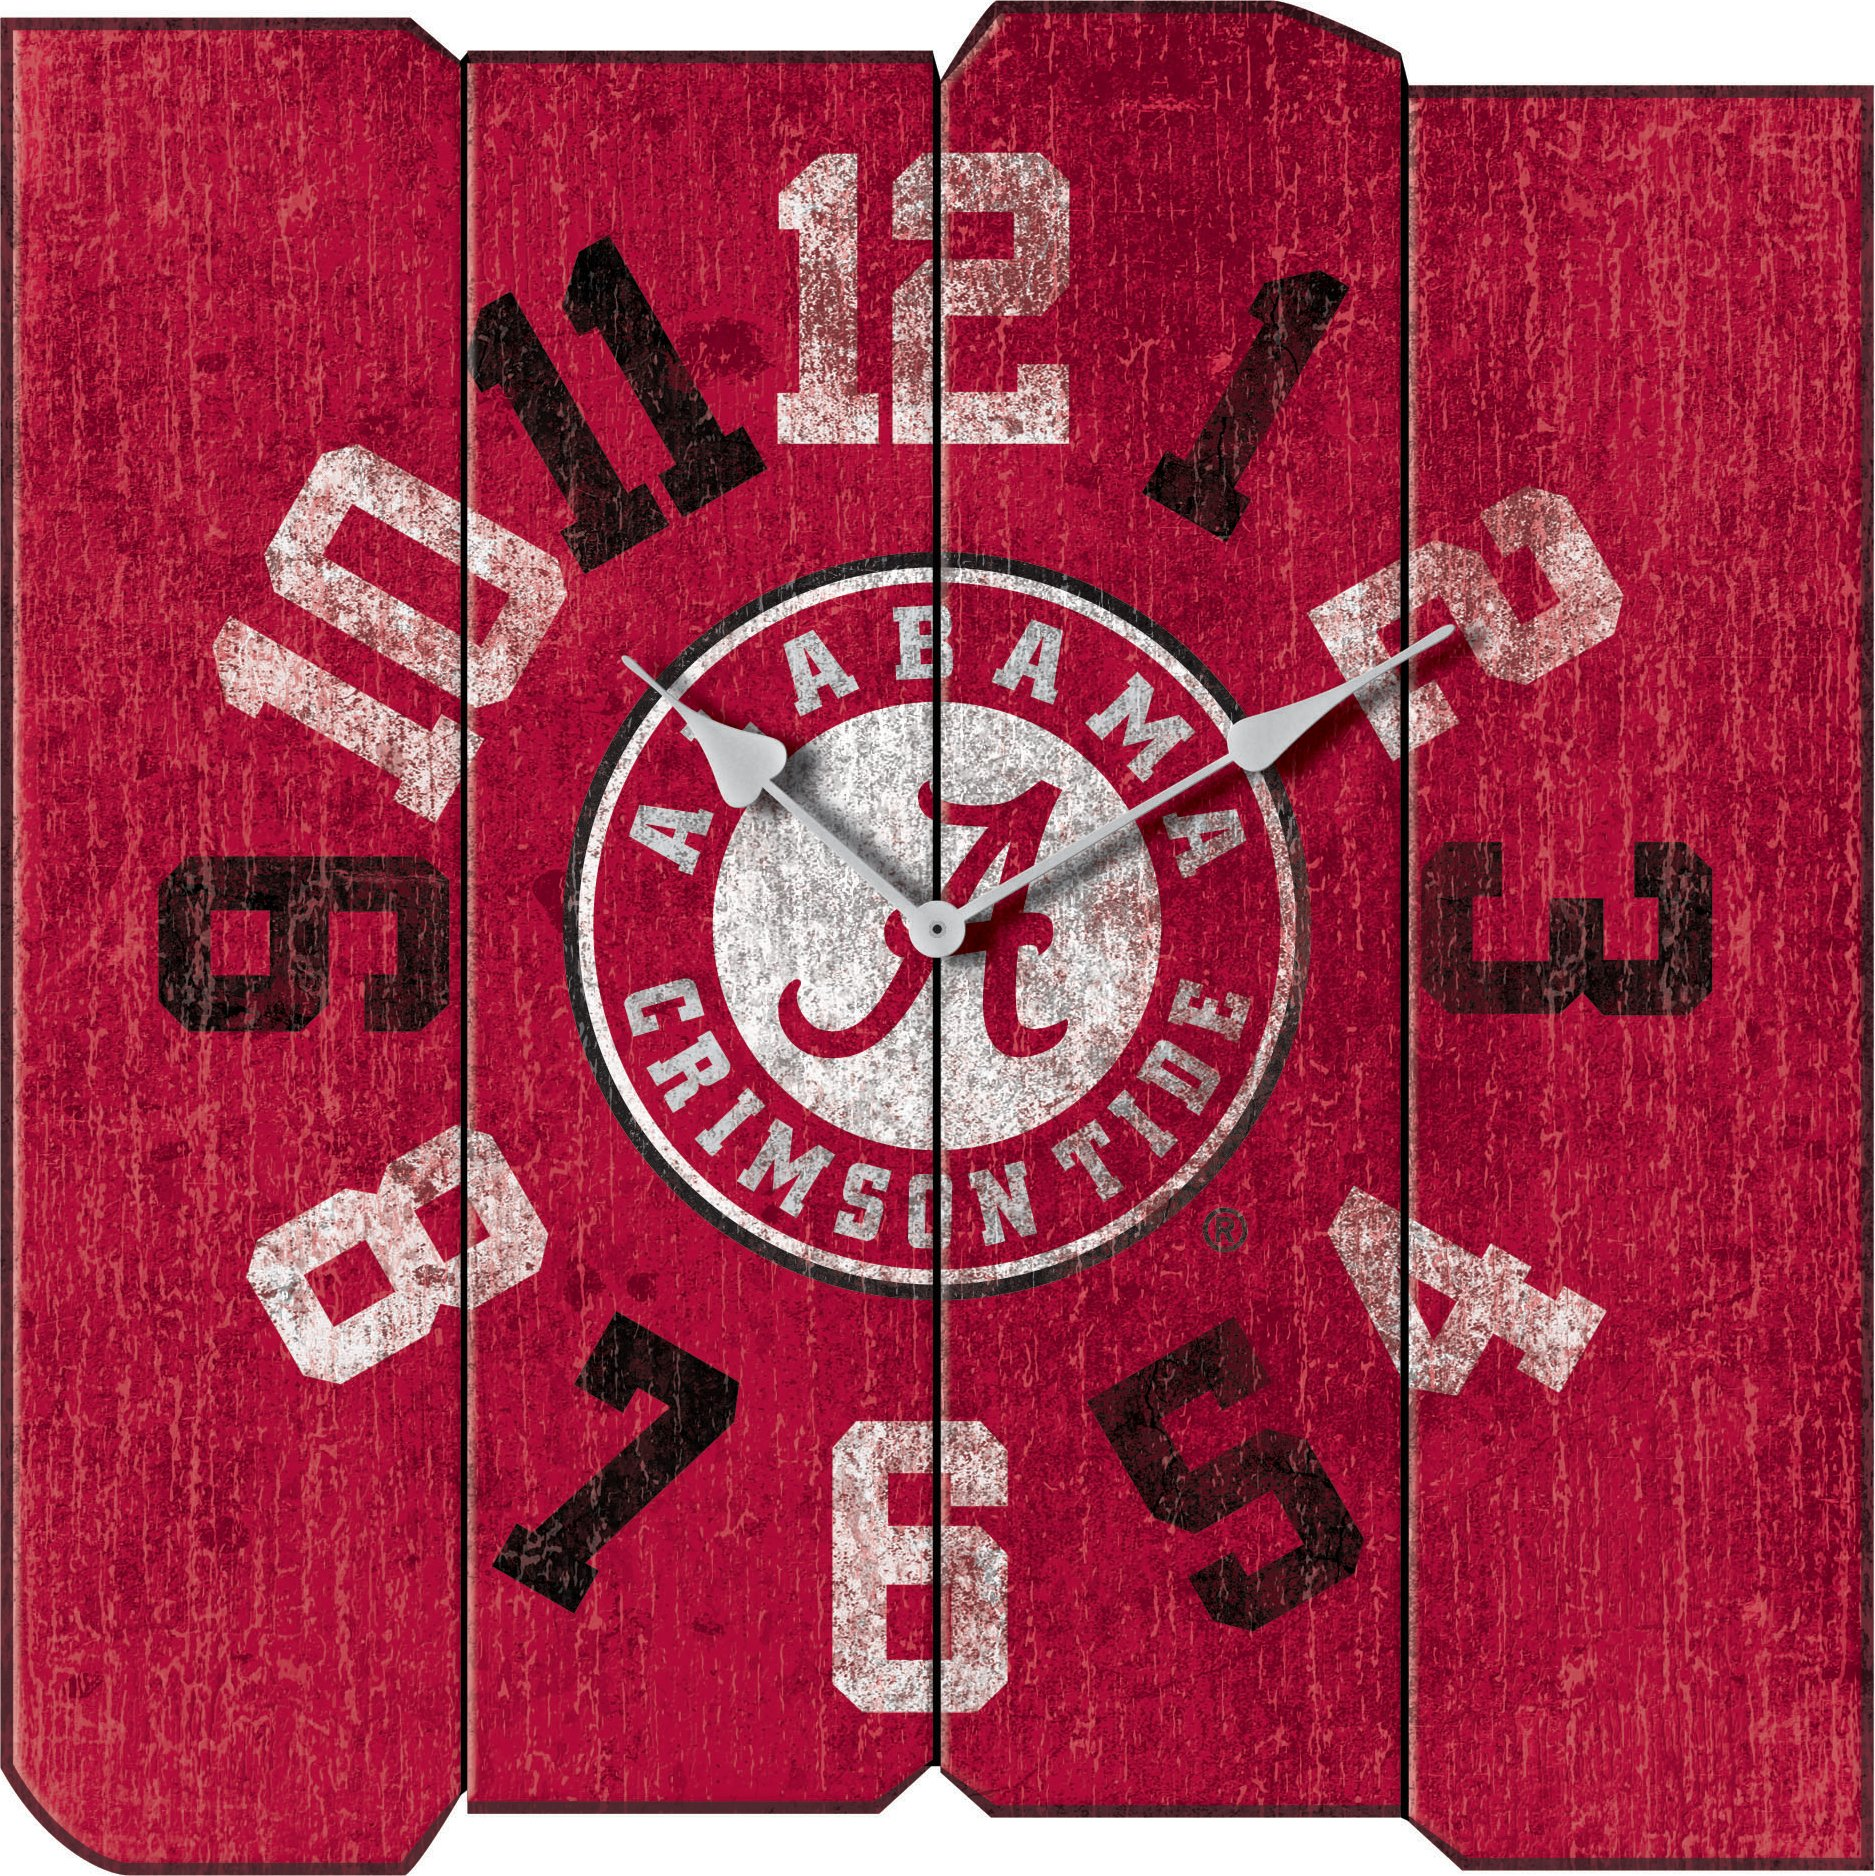 Imperial Officially Licensed NCAA Merchandise: Vintage Square Clock, Alabama Crimson Tide by Imperial